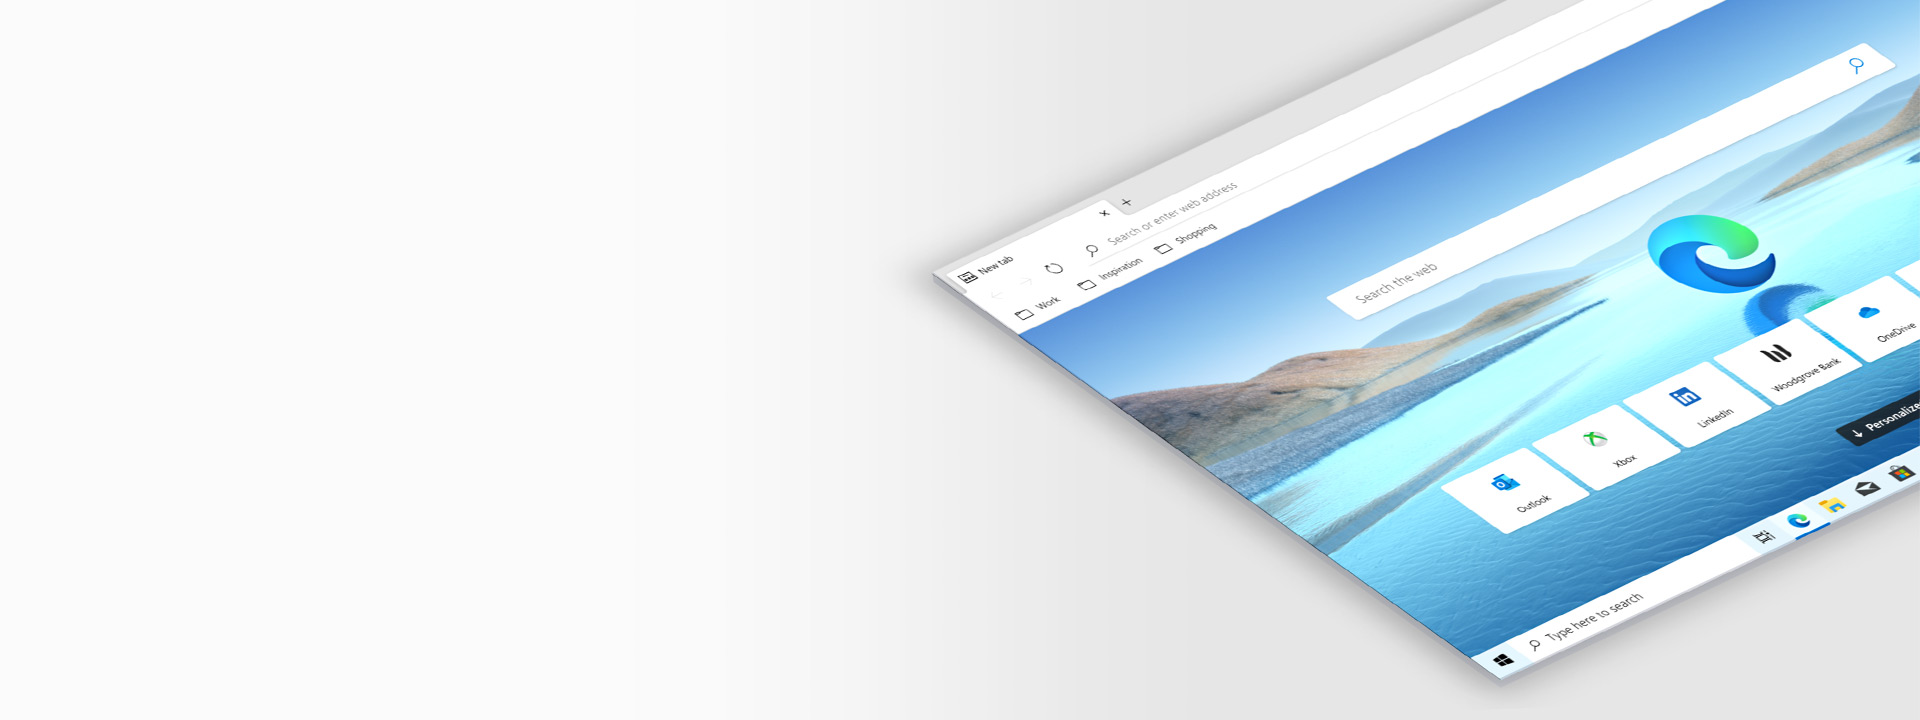 Image of a floating Microsoft Edge screen at an angle.